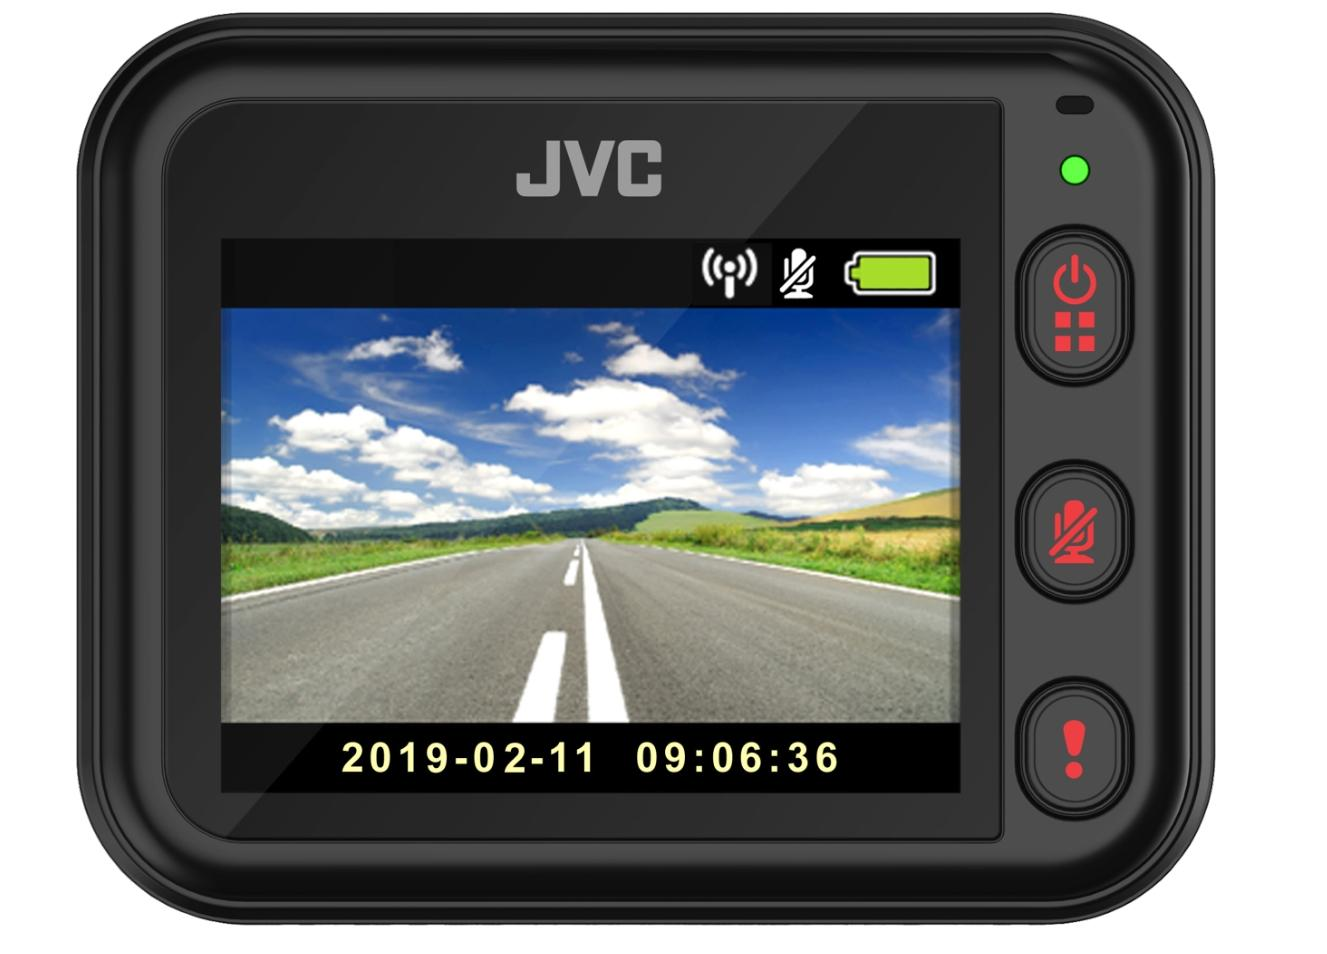 Camere video auto JVC GC-DRE10-S nota